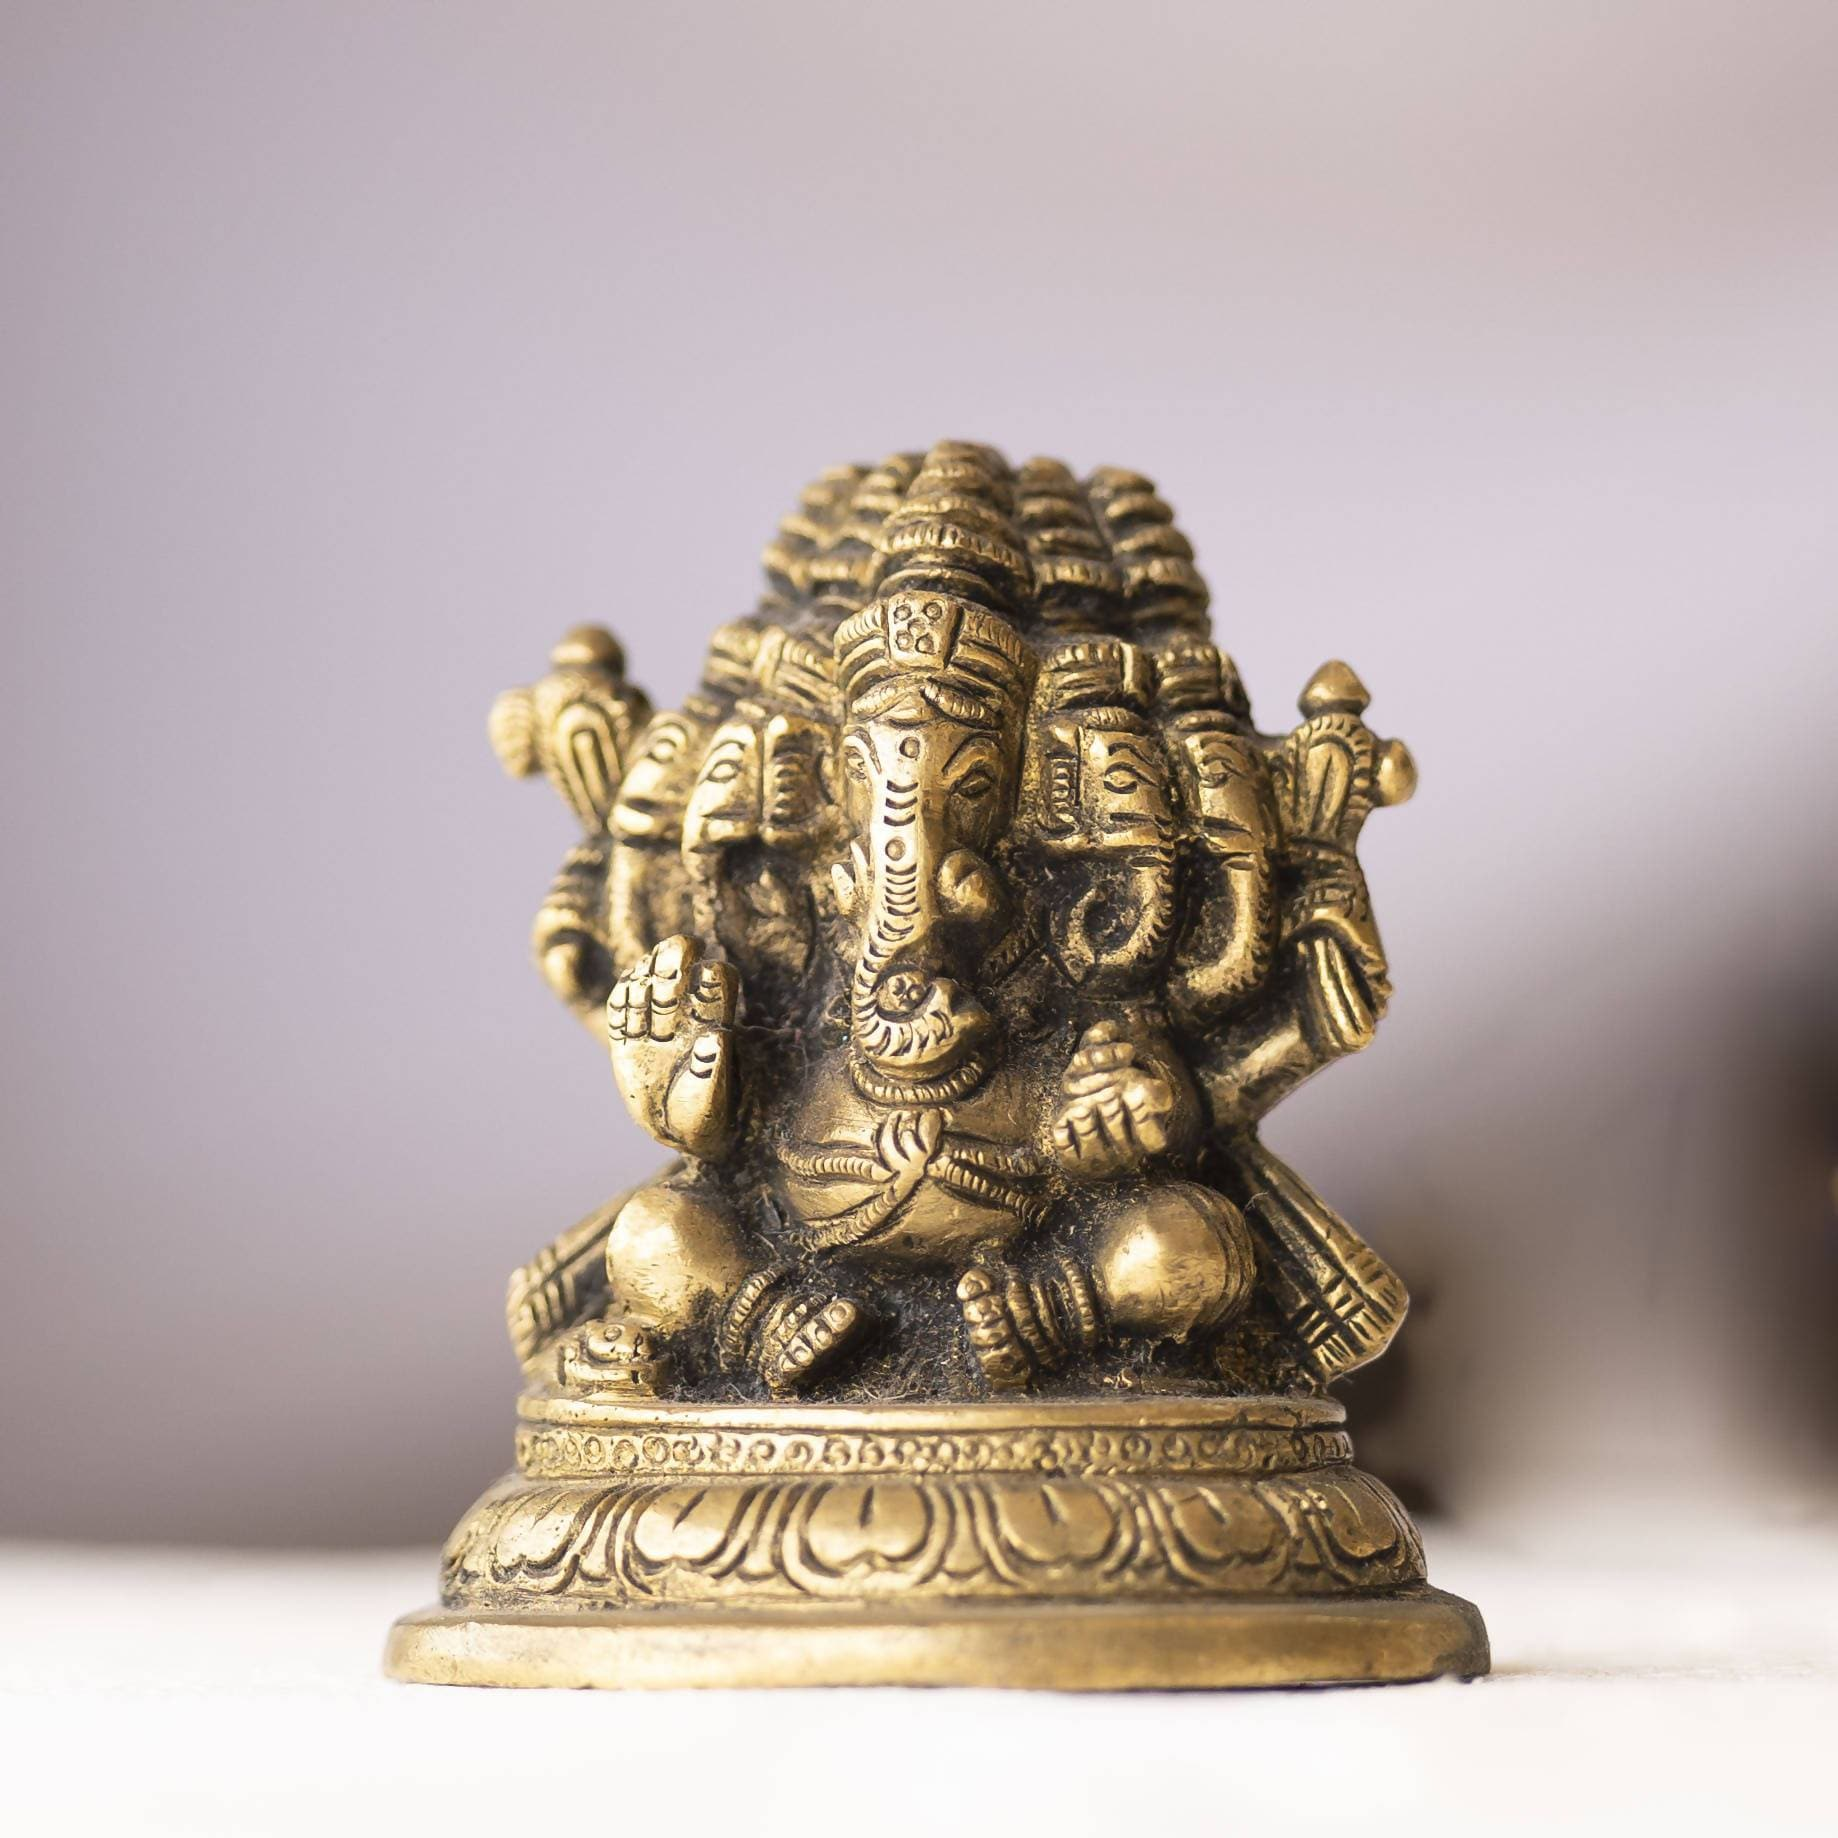 Myoksha Lord Ganesha Sitting Brass Idol For Auspicious Beginnings